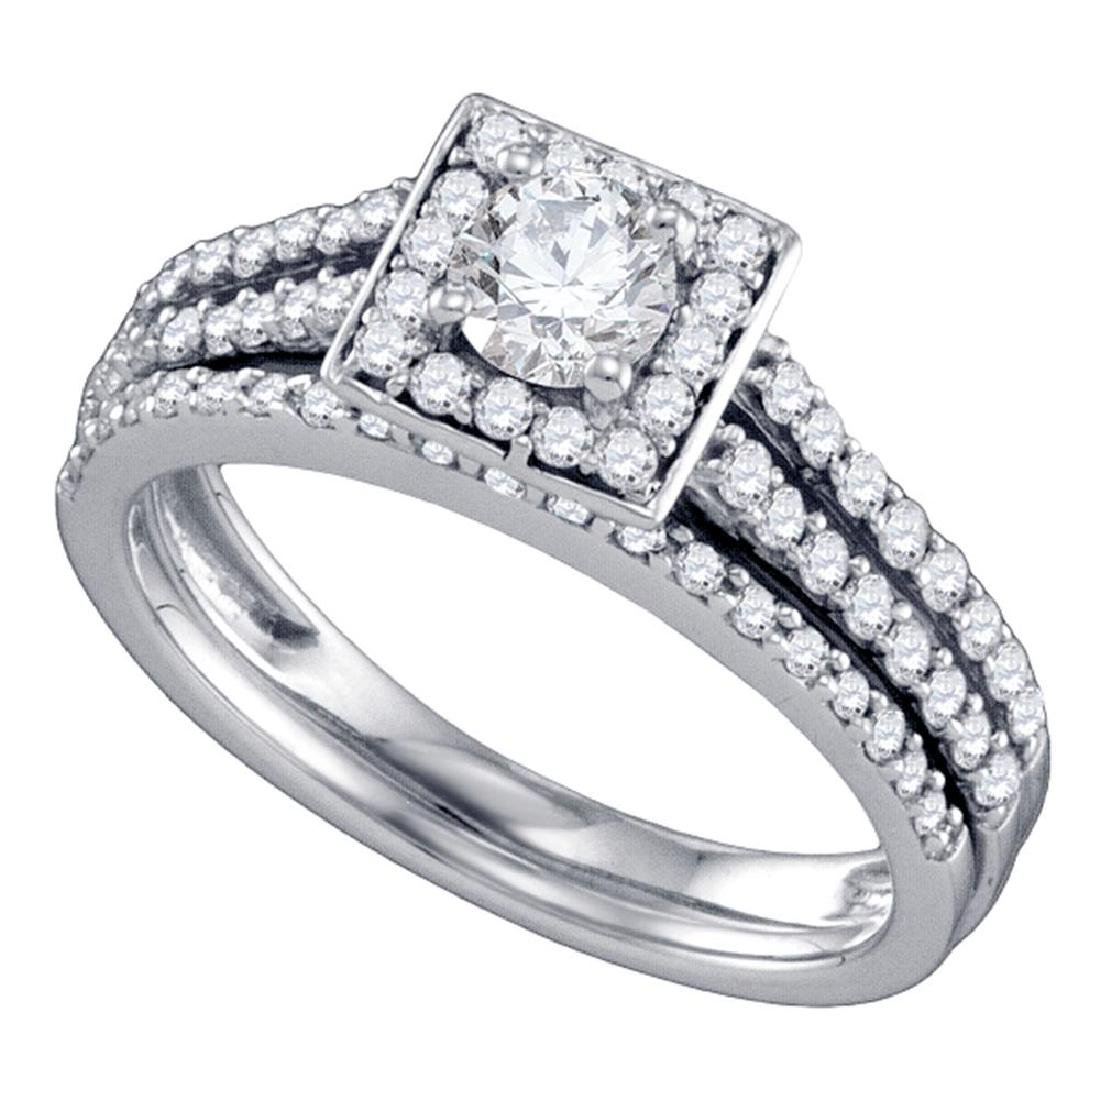 1 CTW Diamond Square Halo Bridal Engagement Ring 14KT